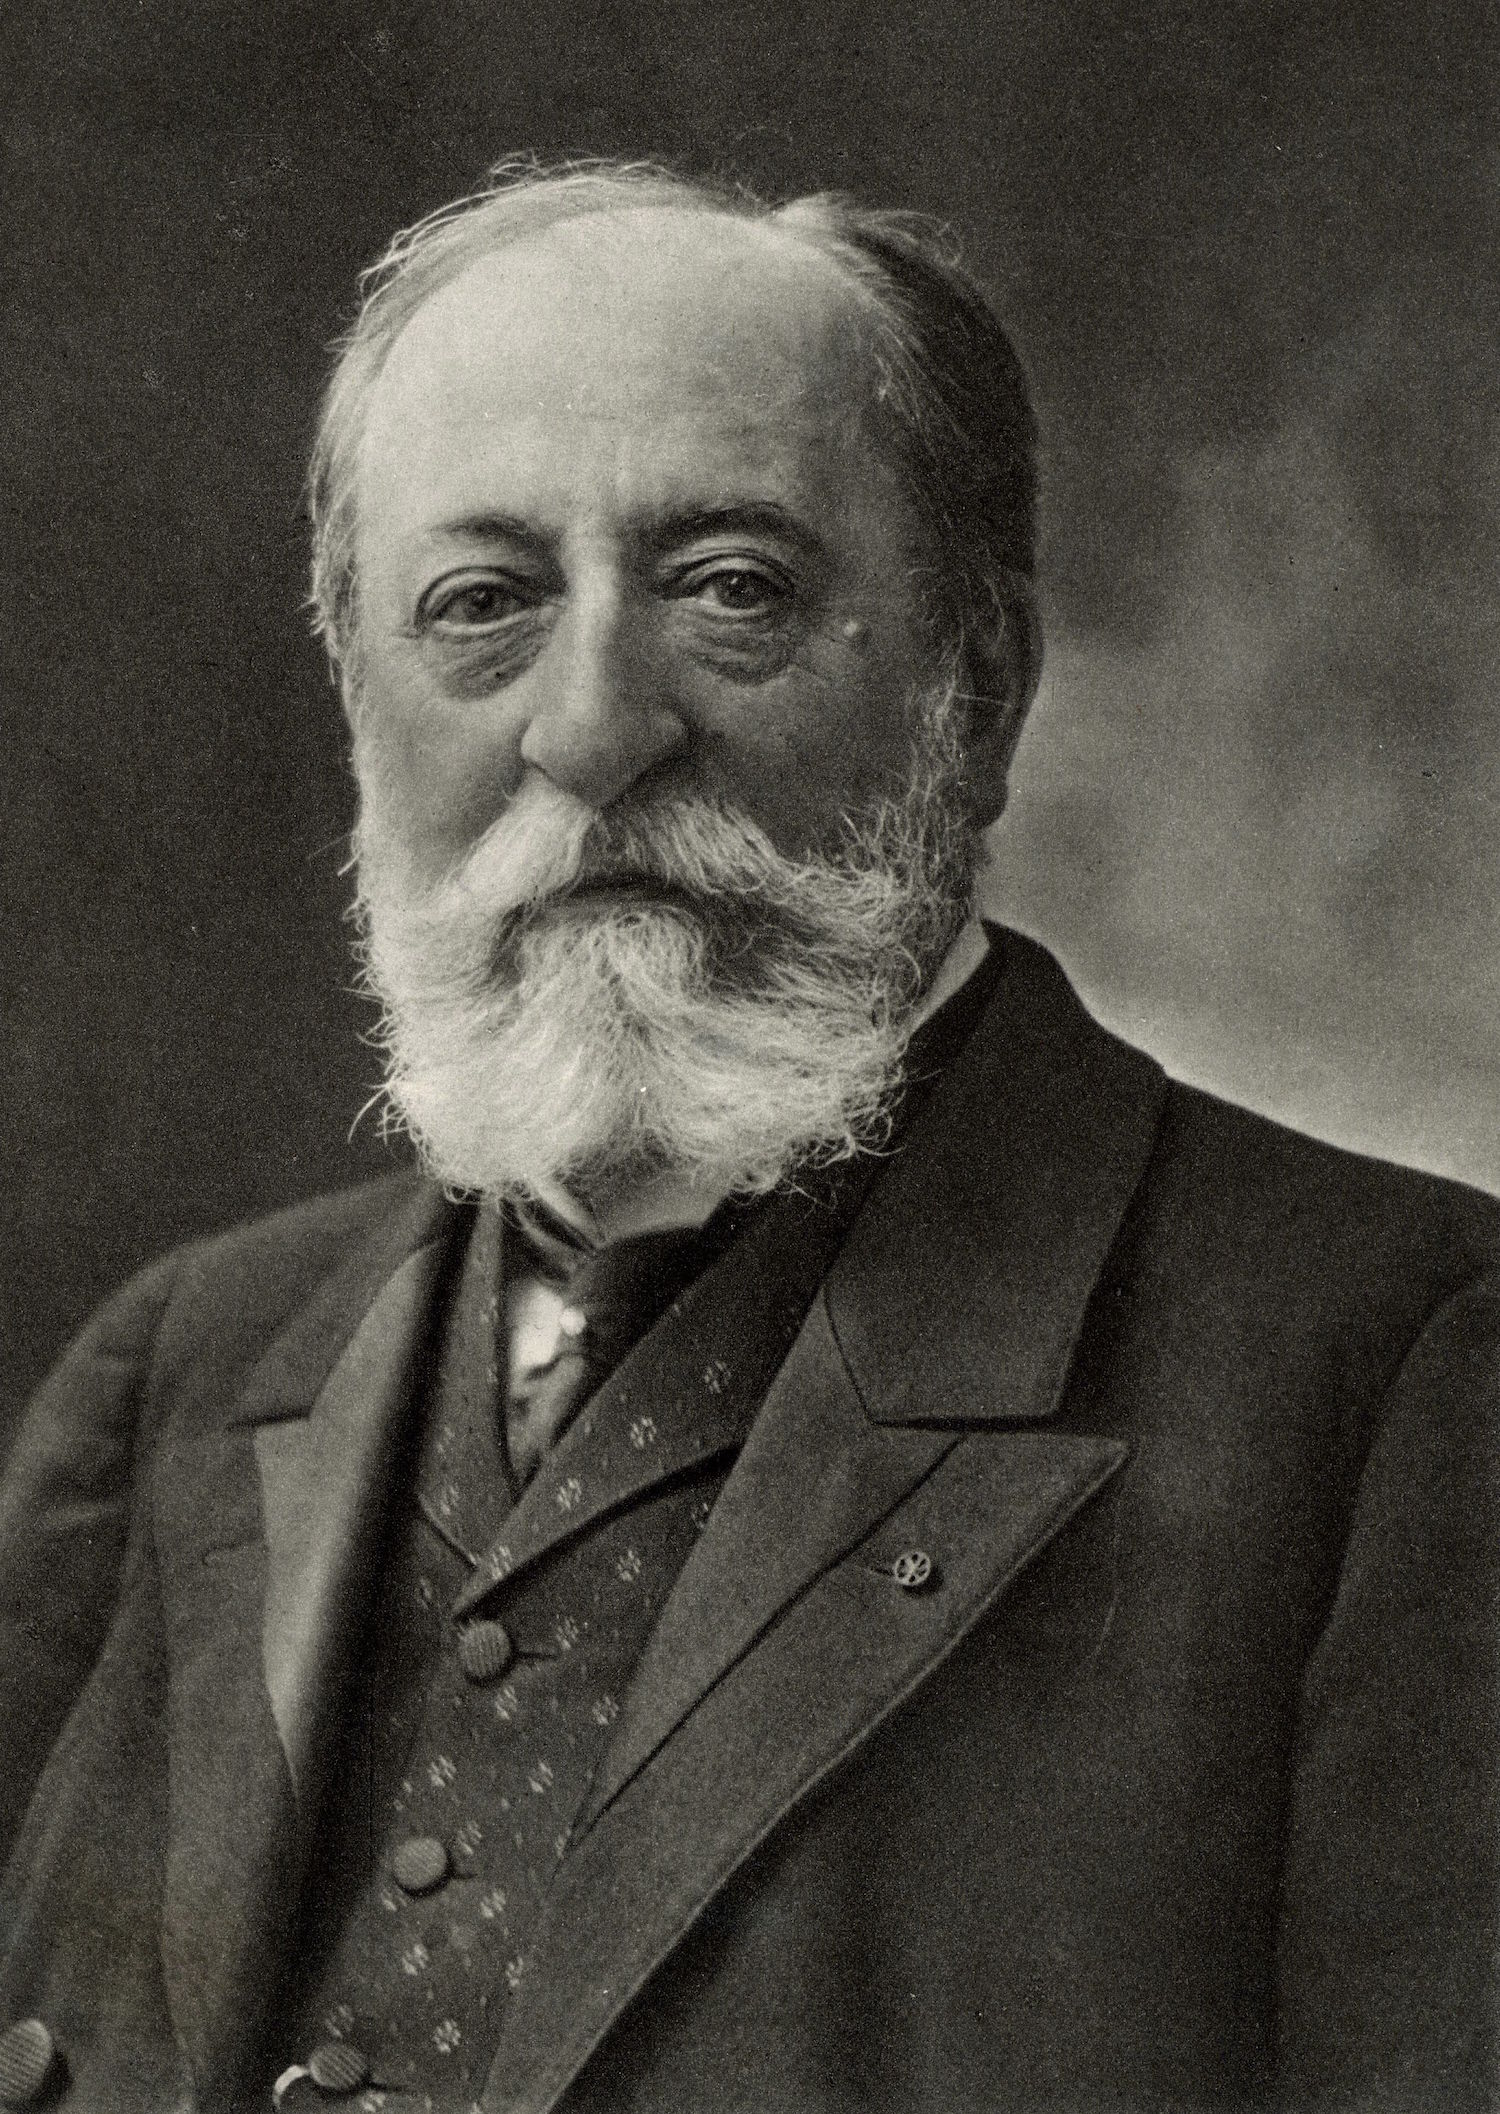 Camille Saint-Saens (1835-1921) French composer and organist. From a photograph by Nadar, pseudonym of Gaspard-Felix Tournachon (1820-1910). History